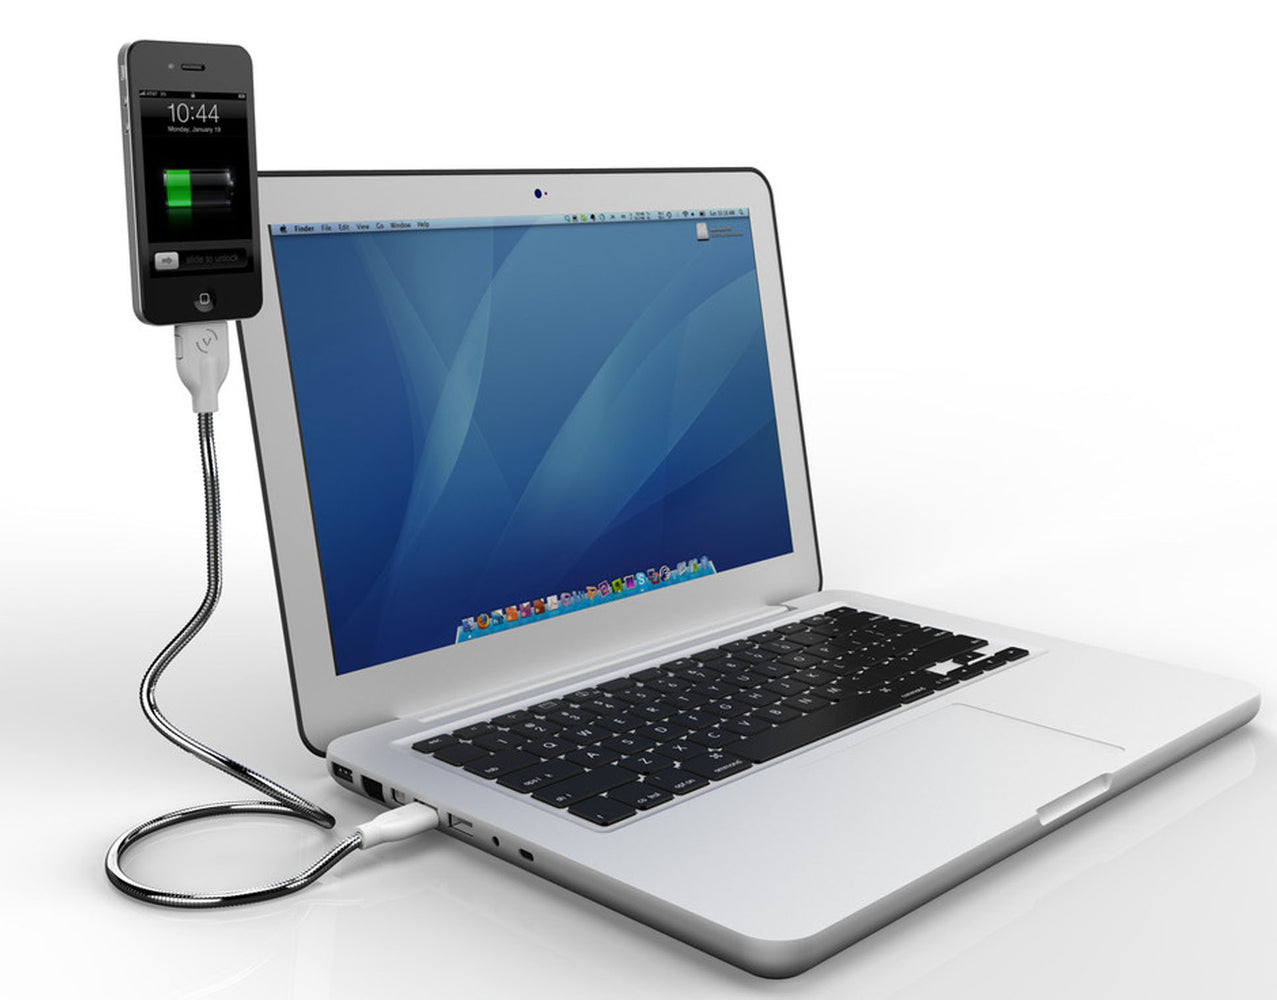 Une Bobine For iPhone 4 & iPod touch Sync & Charging Cable